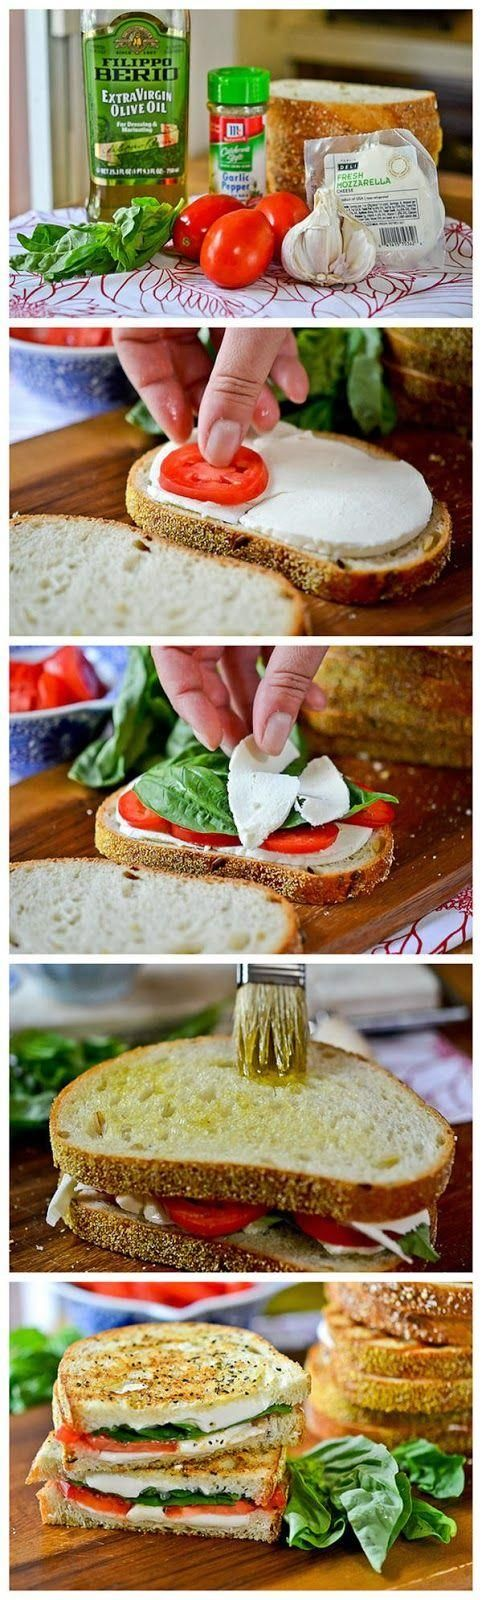 Yummmm Grilled Margherita Sandwiches - Joybx